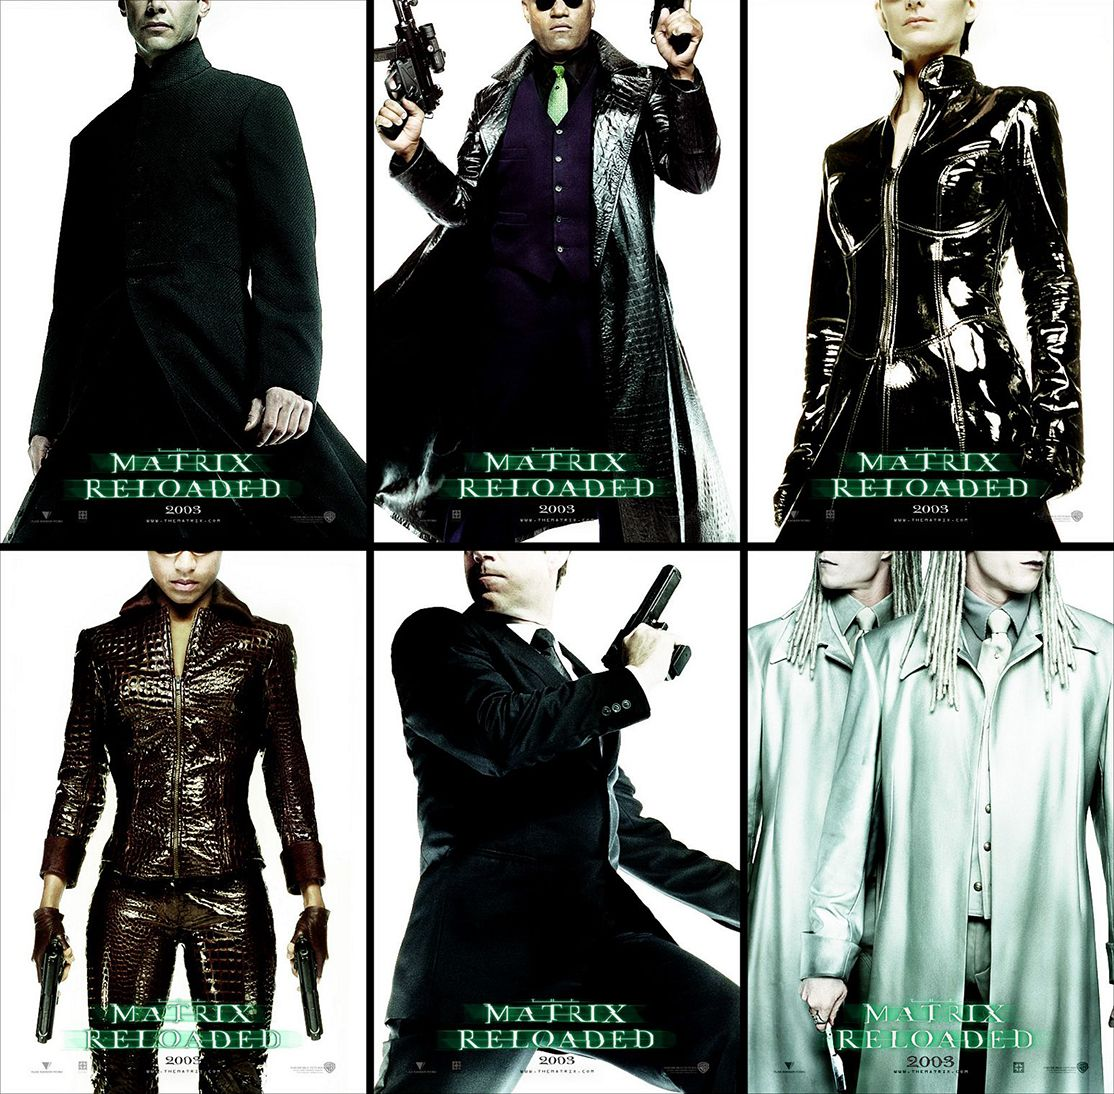 Kick-ass teaser poster series from The Matrix Reloaded (2003)